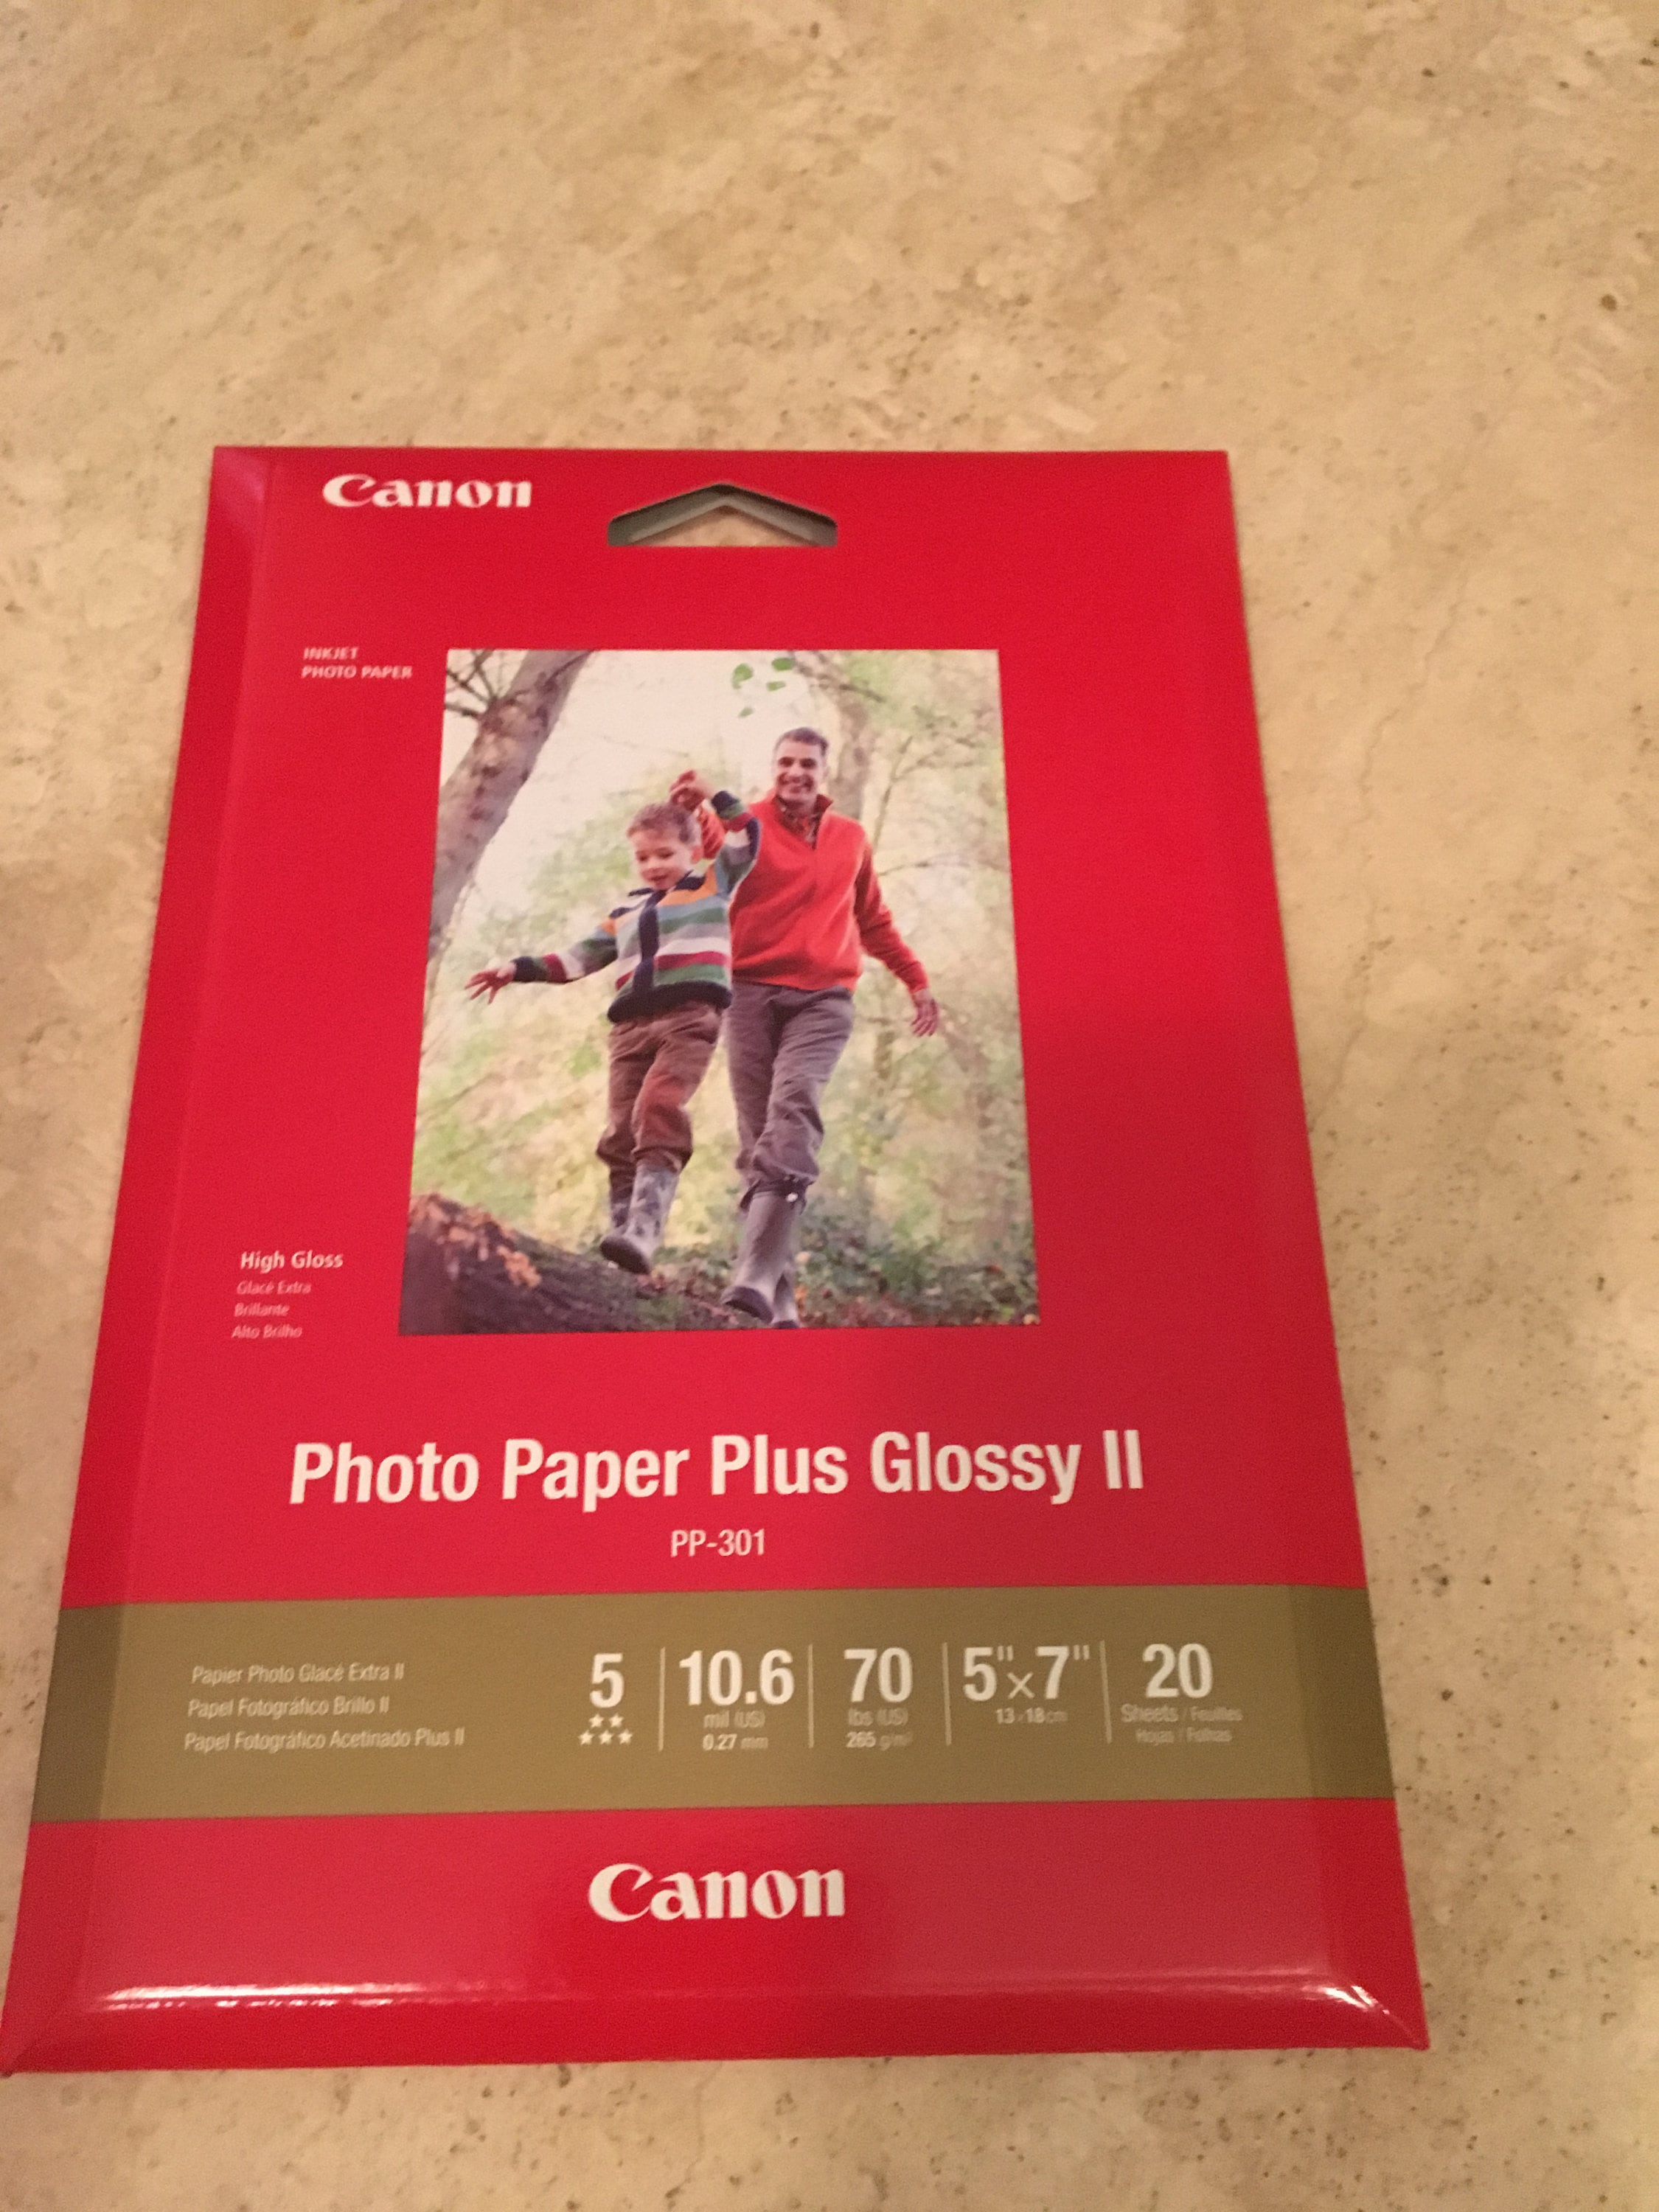 Canon 5 X 7 Photo Paper Glossy Ii 20 Sheets Etsy